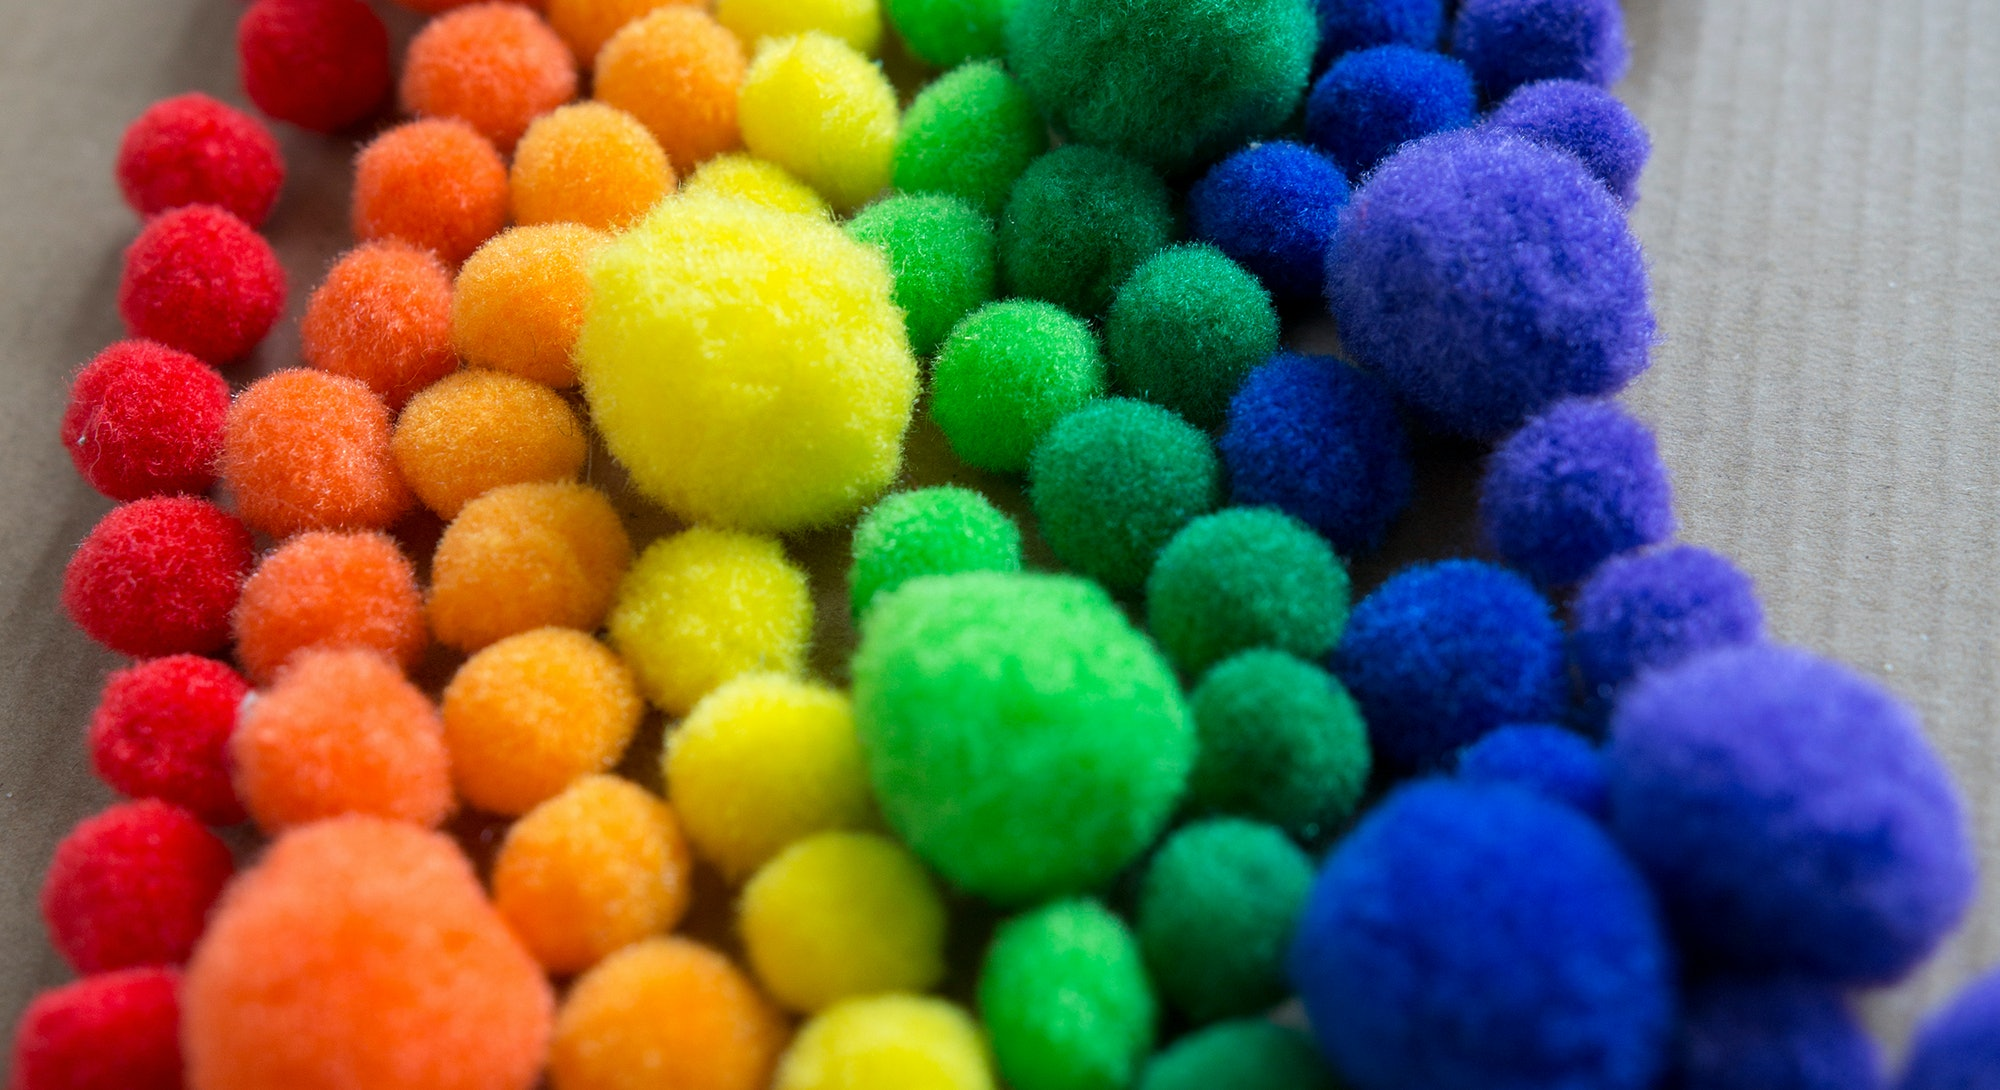 Happy, colorful rainbow pattern made of fluffy pom pom balls.